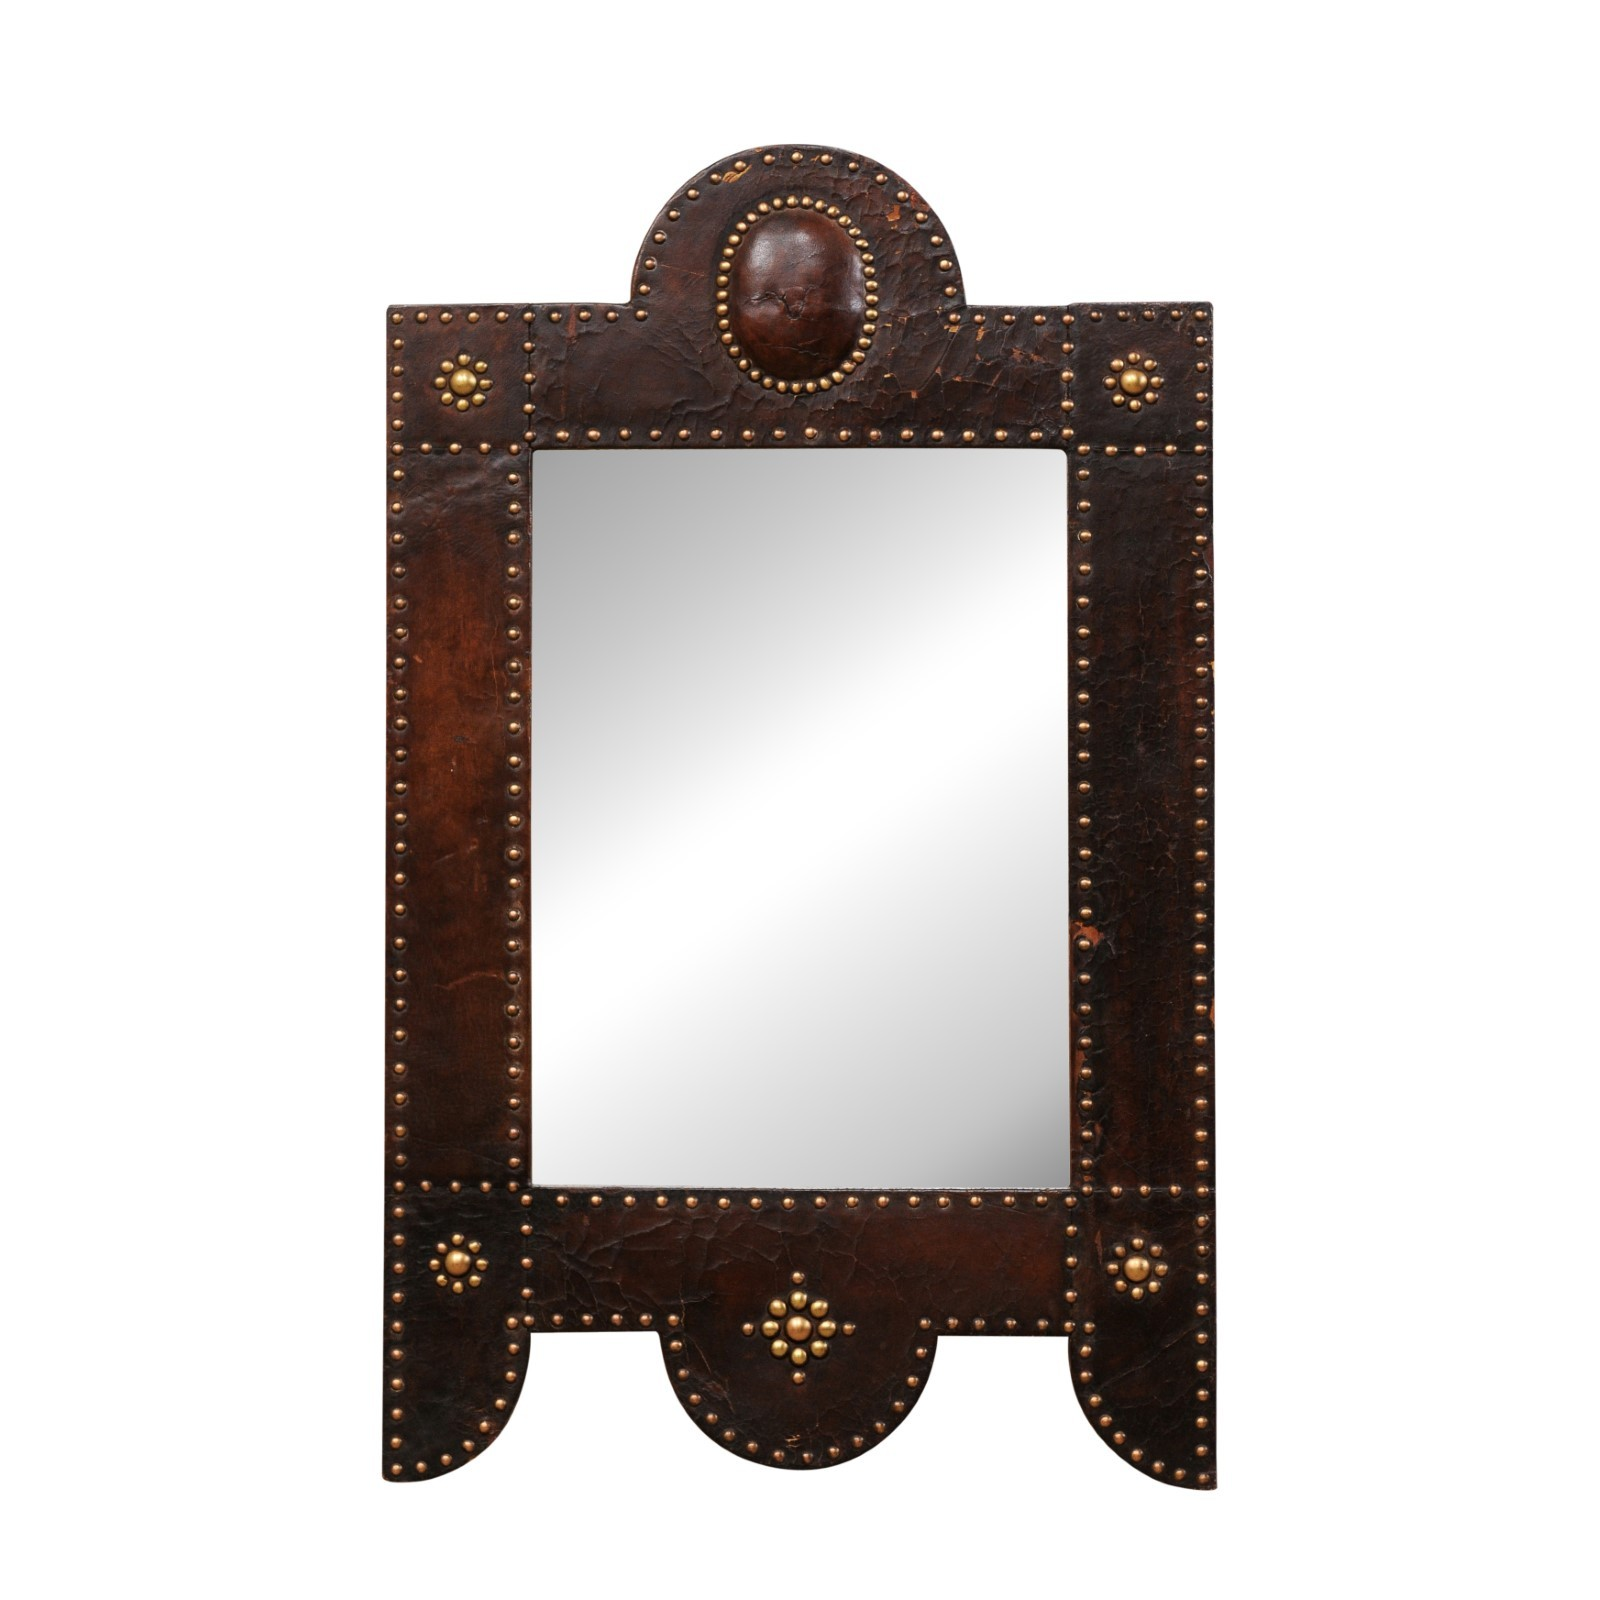 Spanish Mirror w/ Leather & Brass, 19th C.